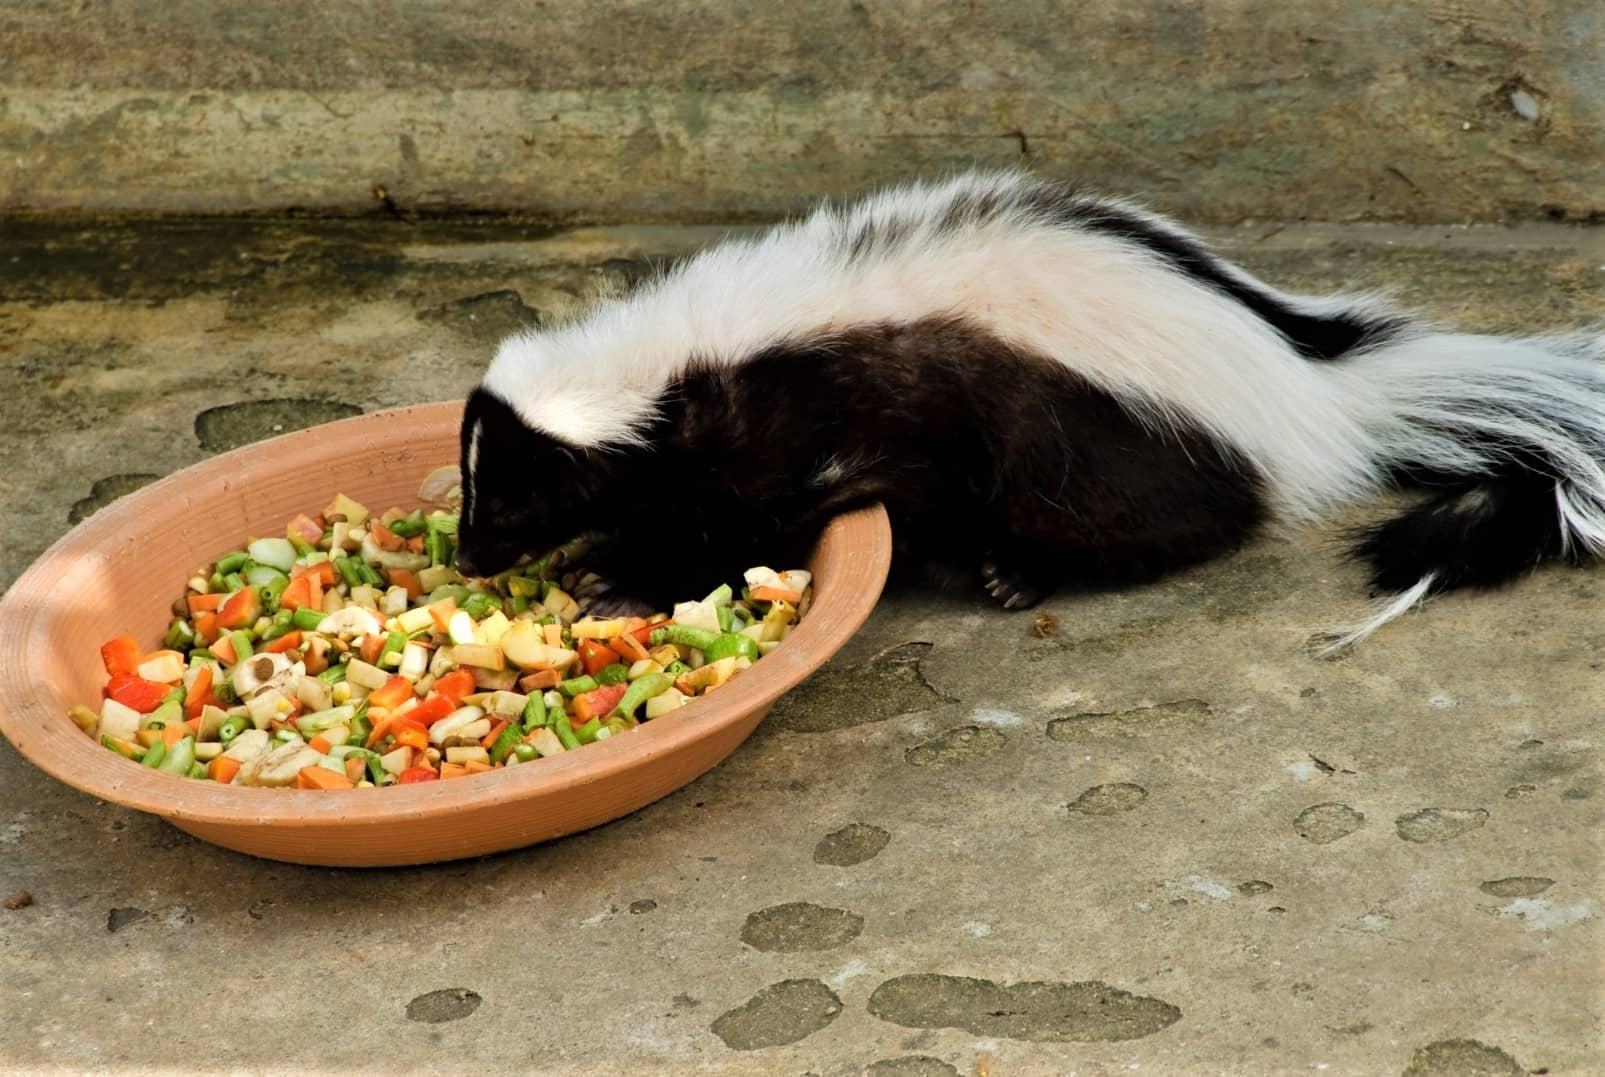 Do Skunks Eat Meat What Do They Eat Alot What Do They Like...